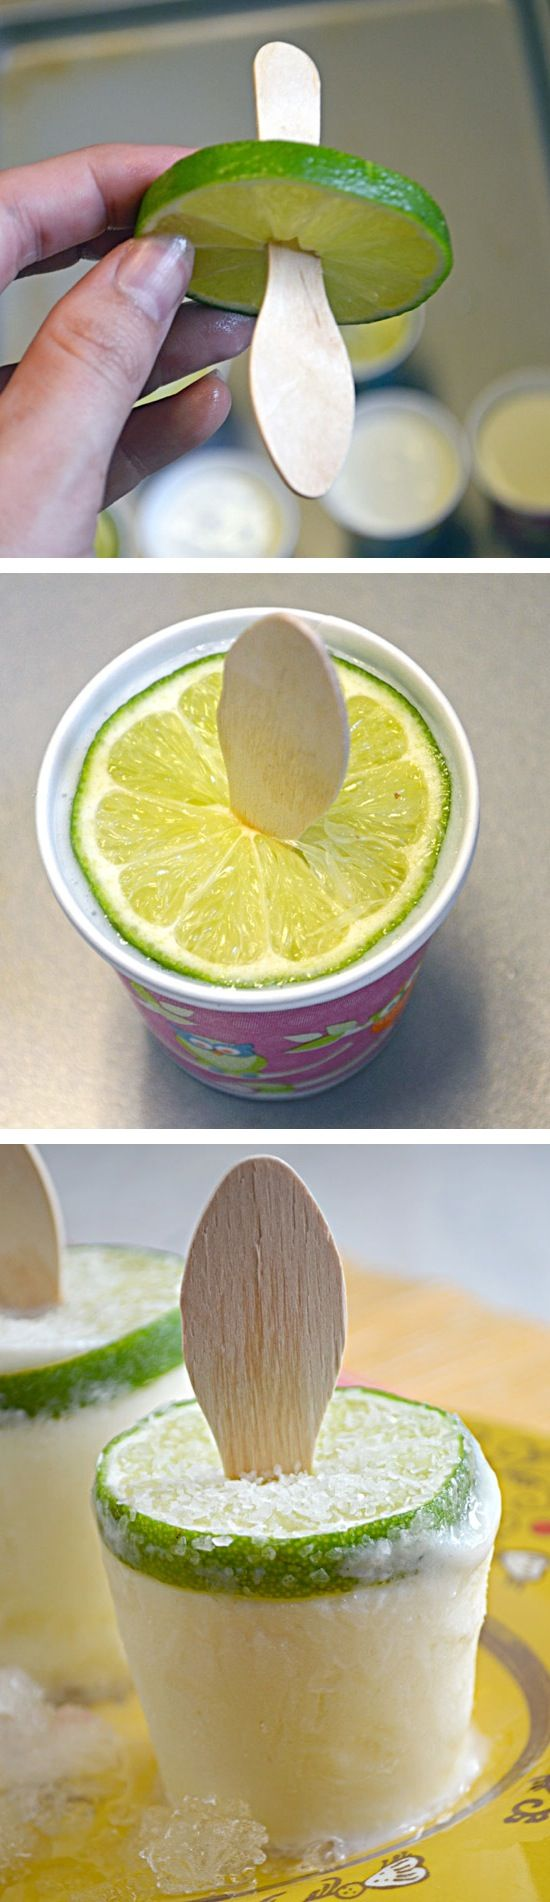 Creamy Margarita Popsicles | Recipe | Popsicles, Salts and ...